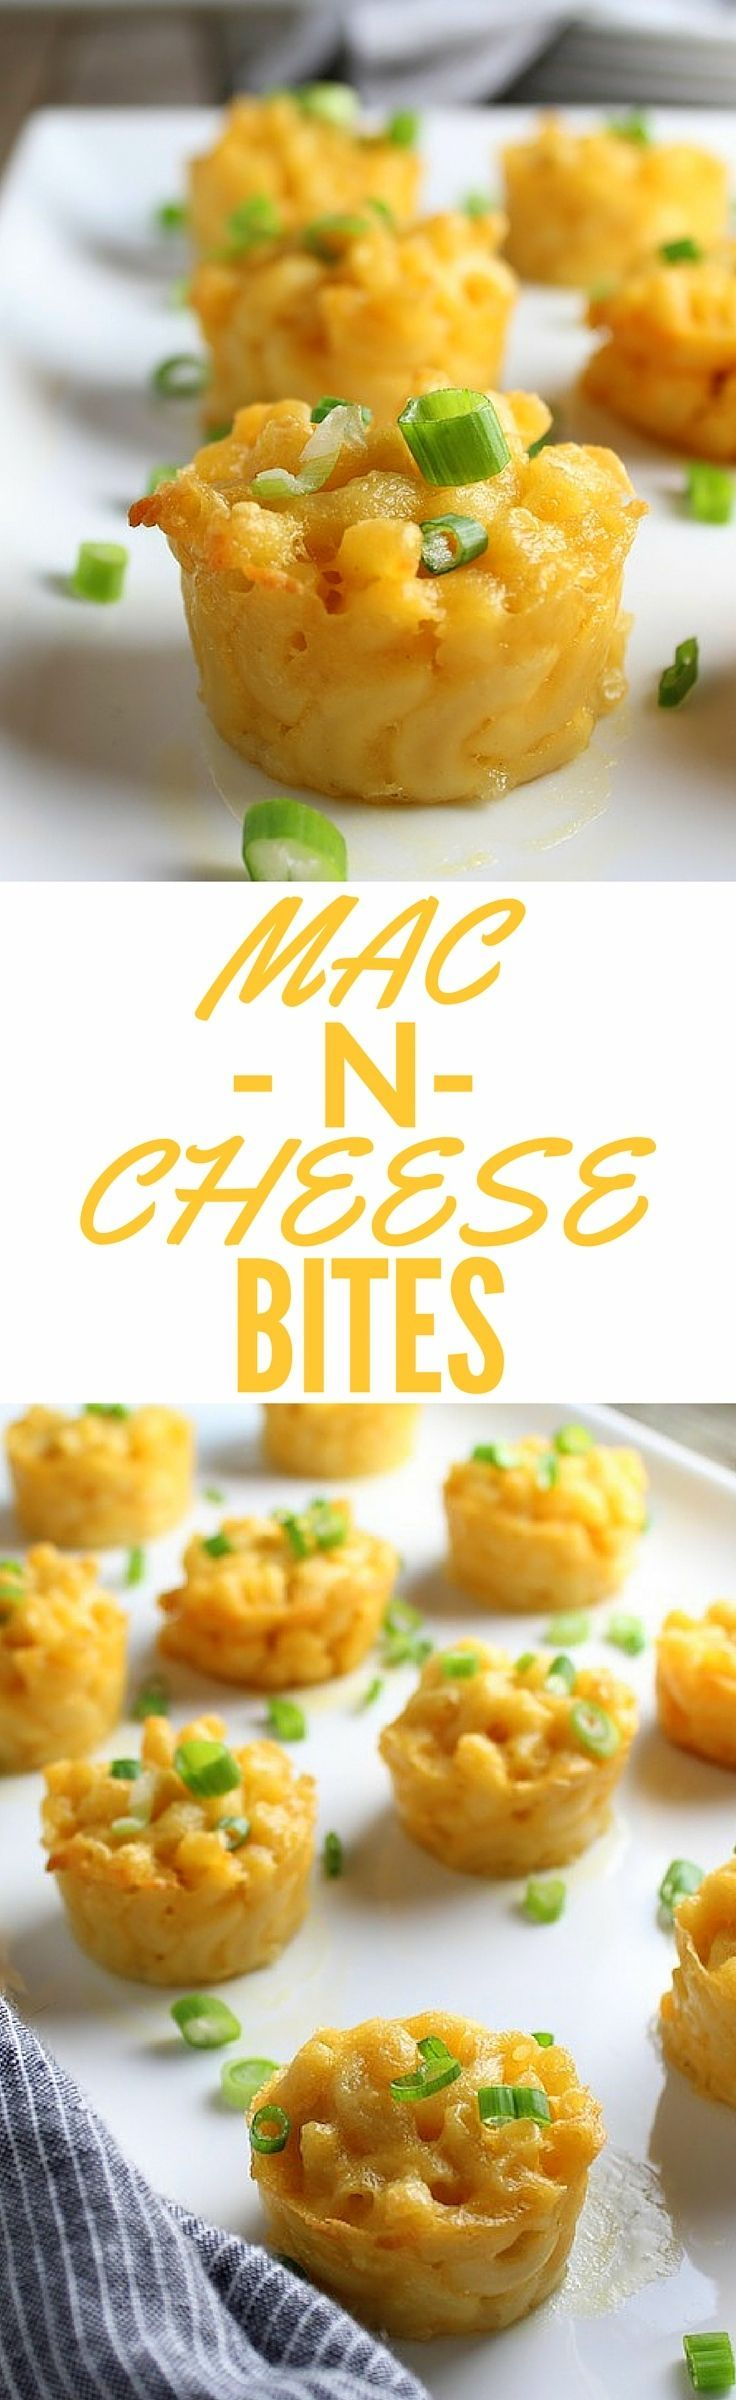 Mac N Cheese Bites recipe -  it's the ultimate comfort food!  A decadent combination of Gruyere & Cheddar cheese… little gifts of goodness in every bite! #macandcheese http://tasteandsee.com